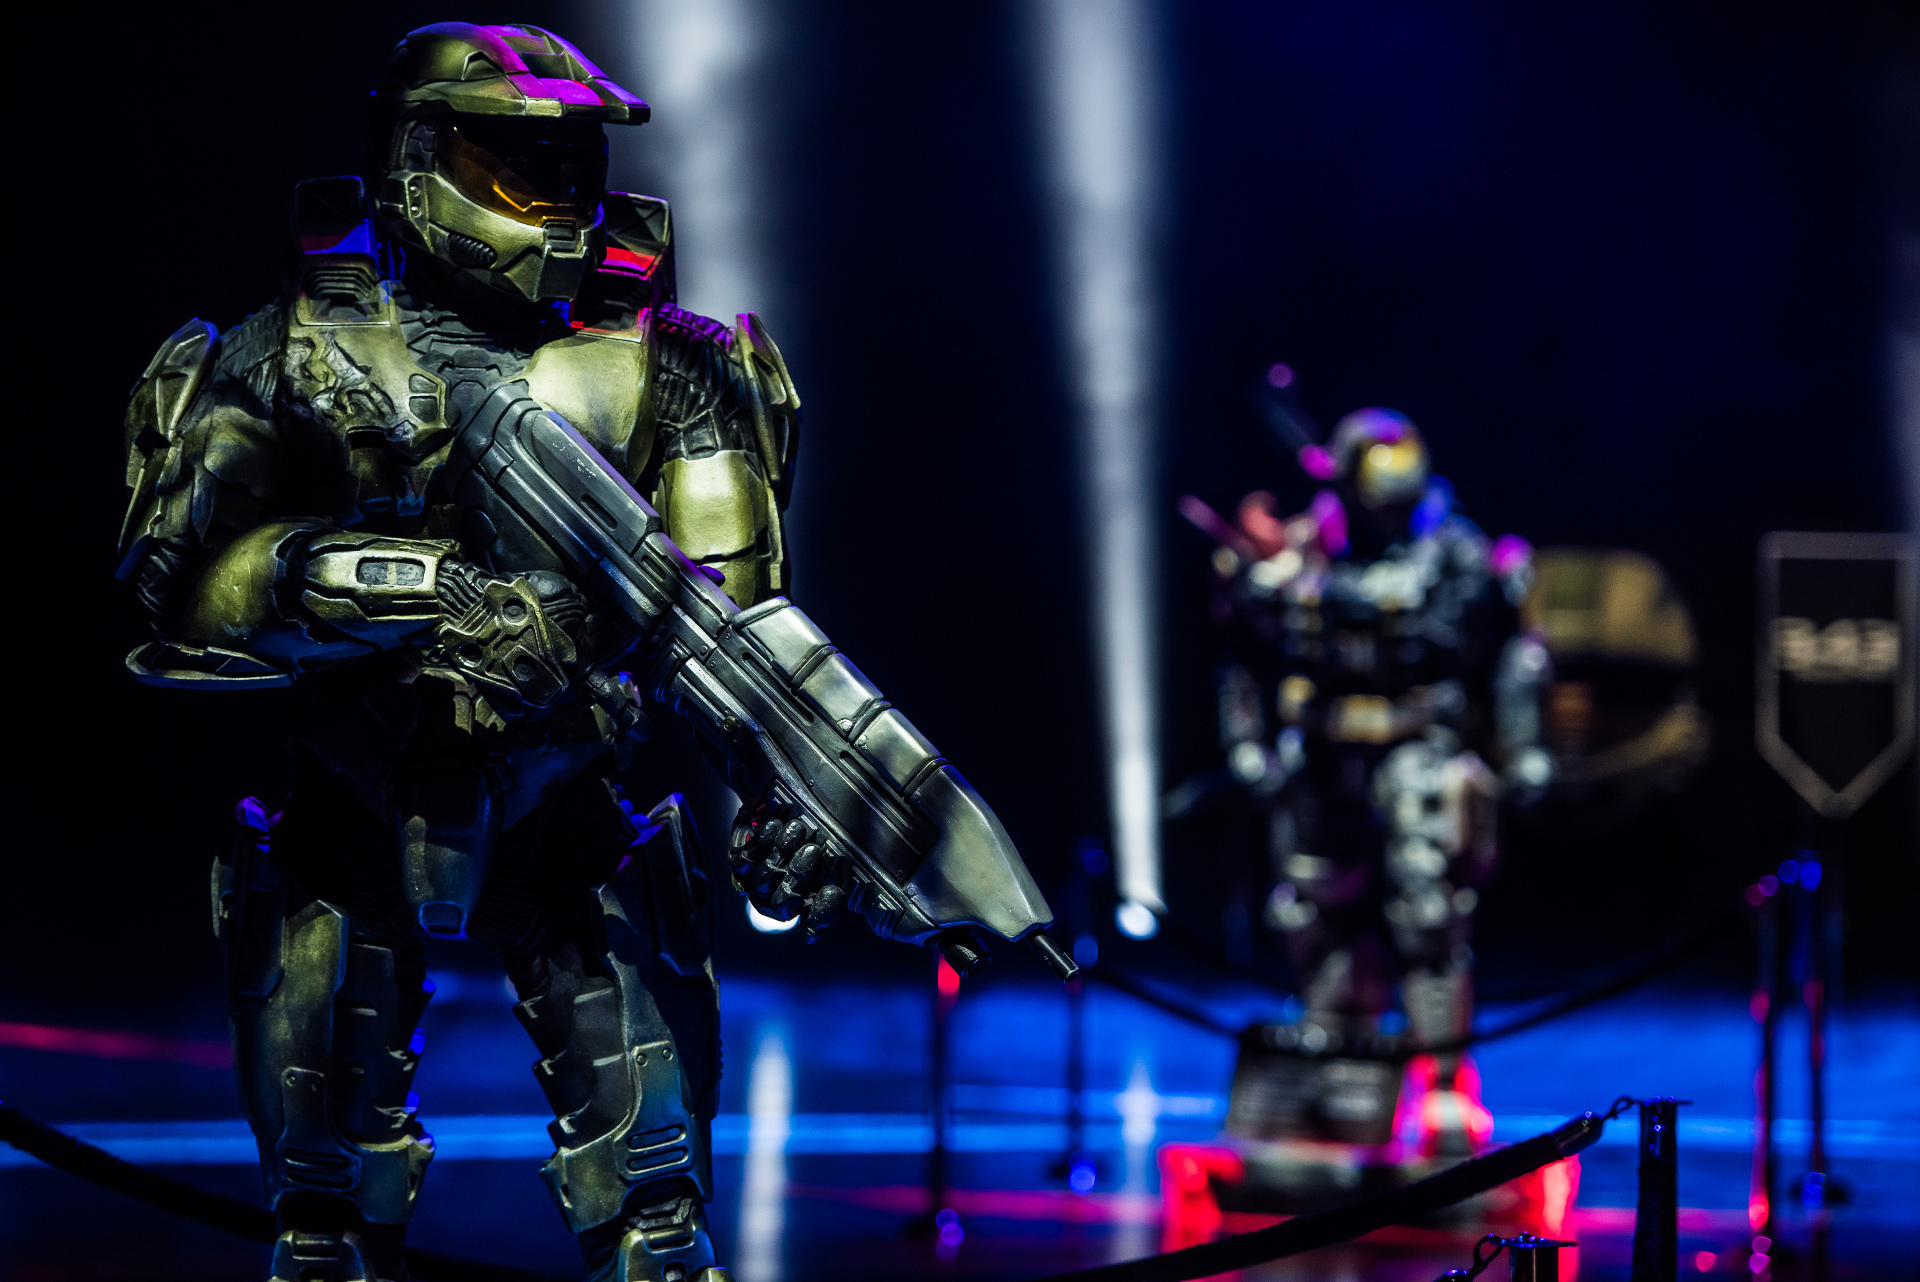 Halo: The Master Chief Collection news teased for Inside Xbox screenshot